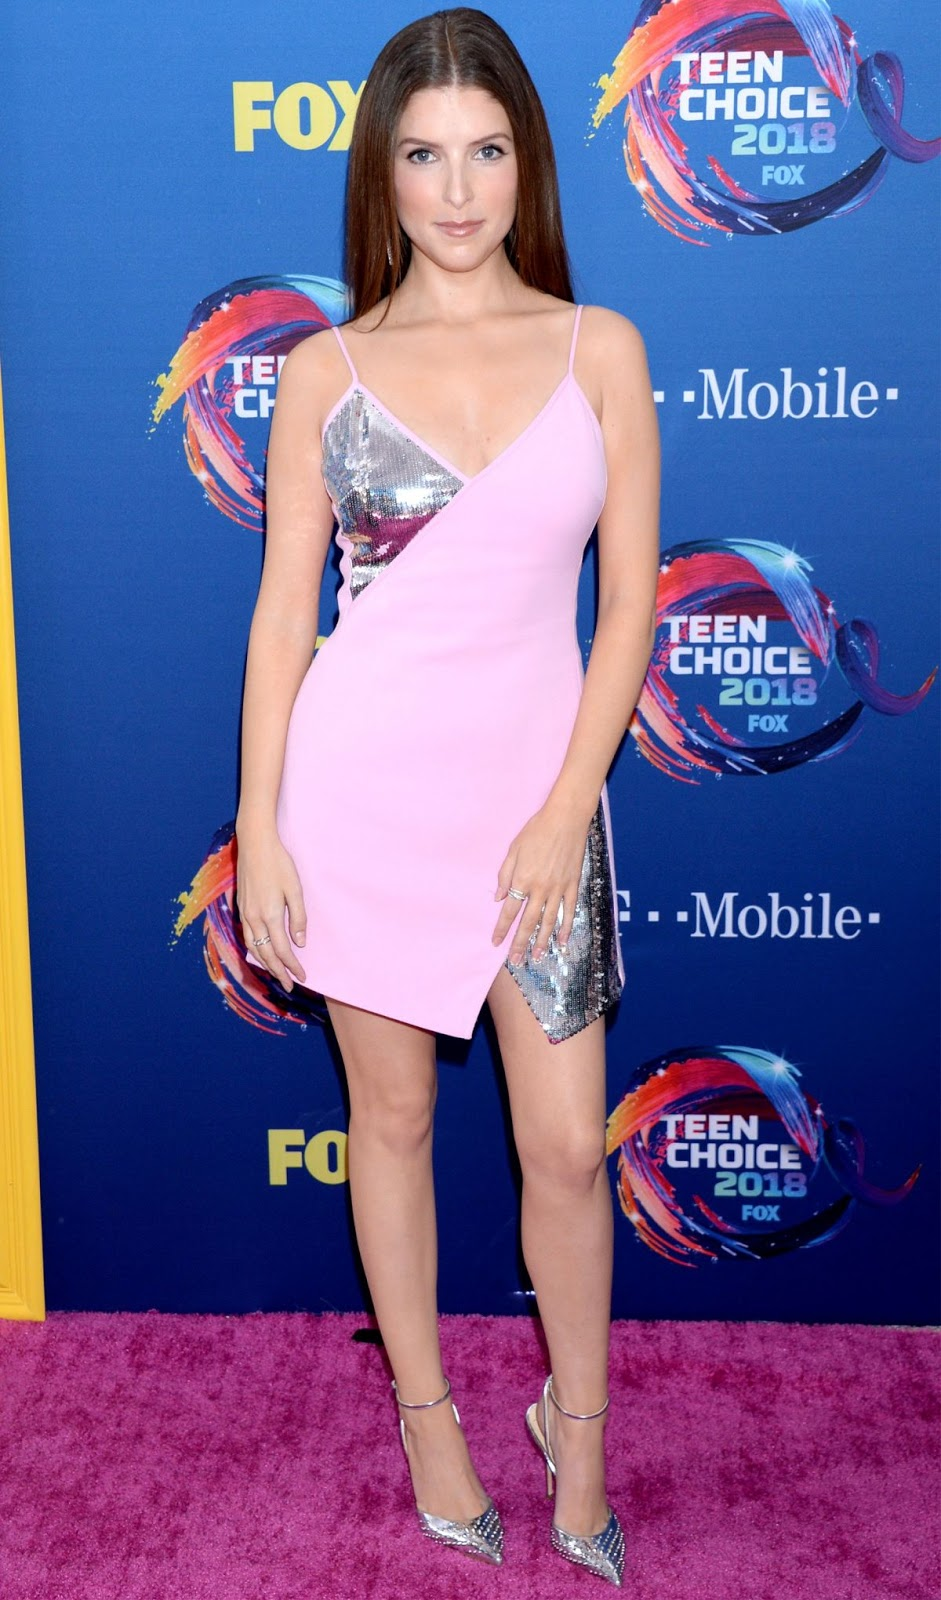 S And W >> Anna Kendrick at 2018 Teen Choice Awards in Beverly Hills ...